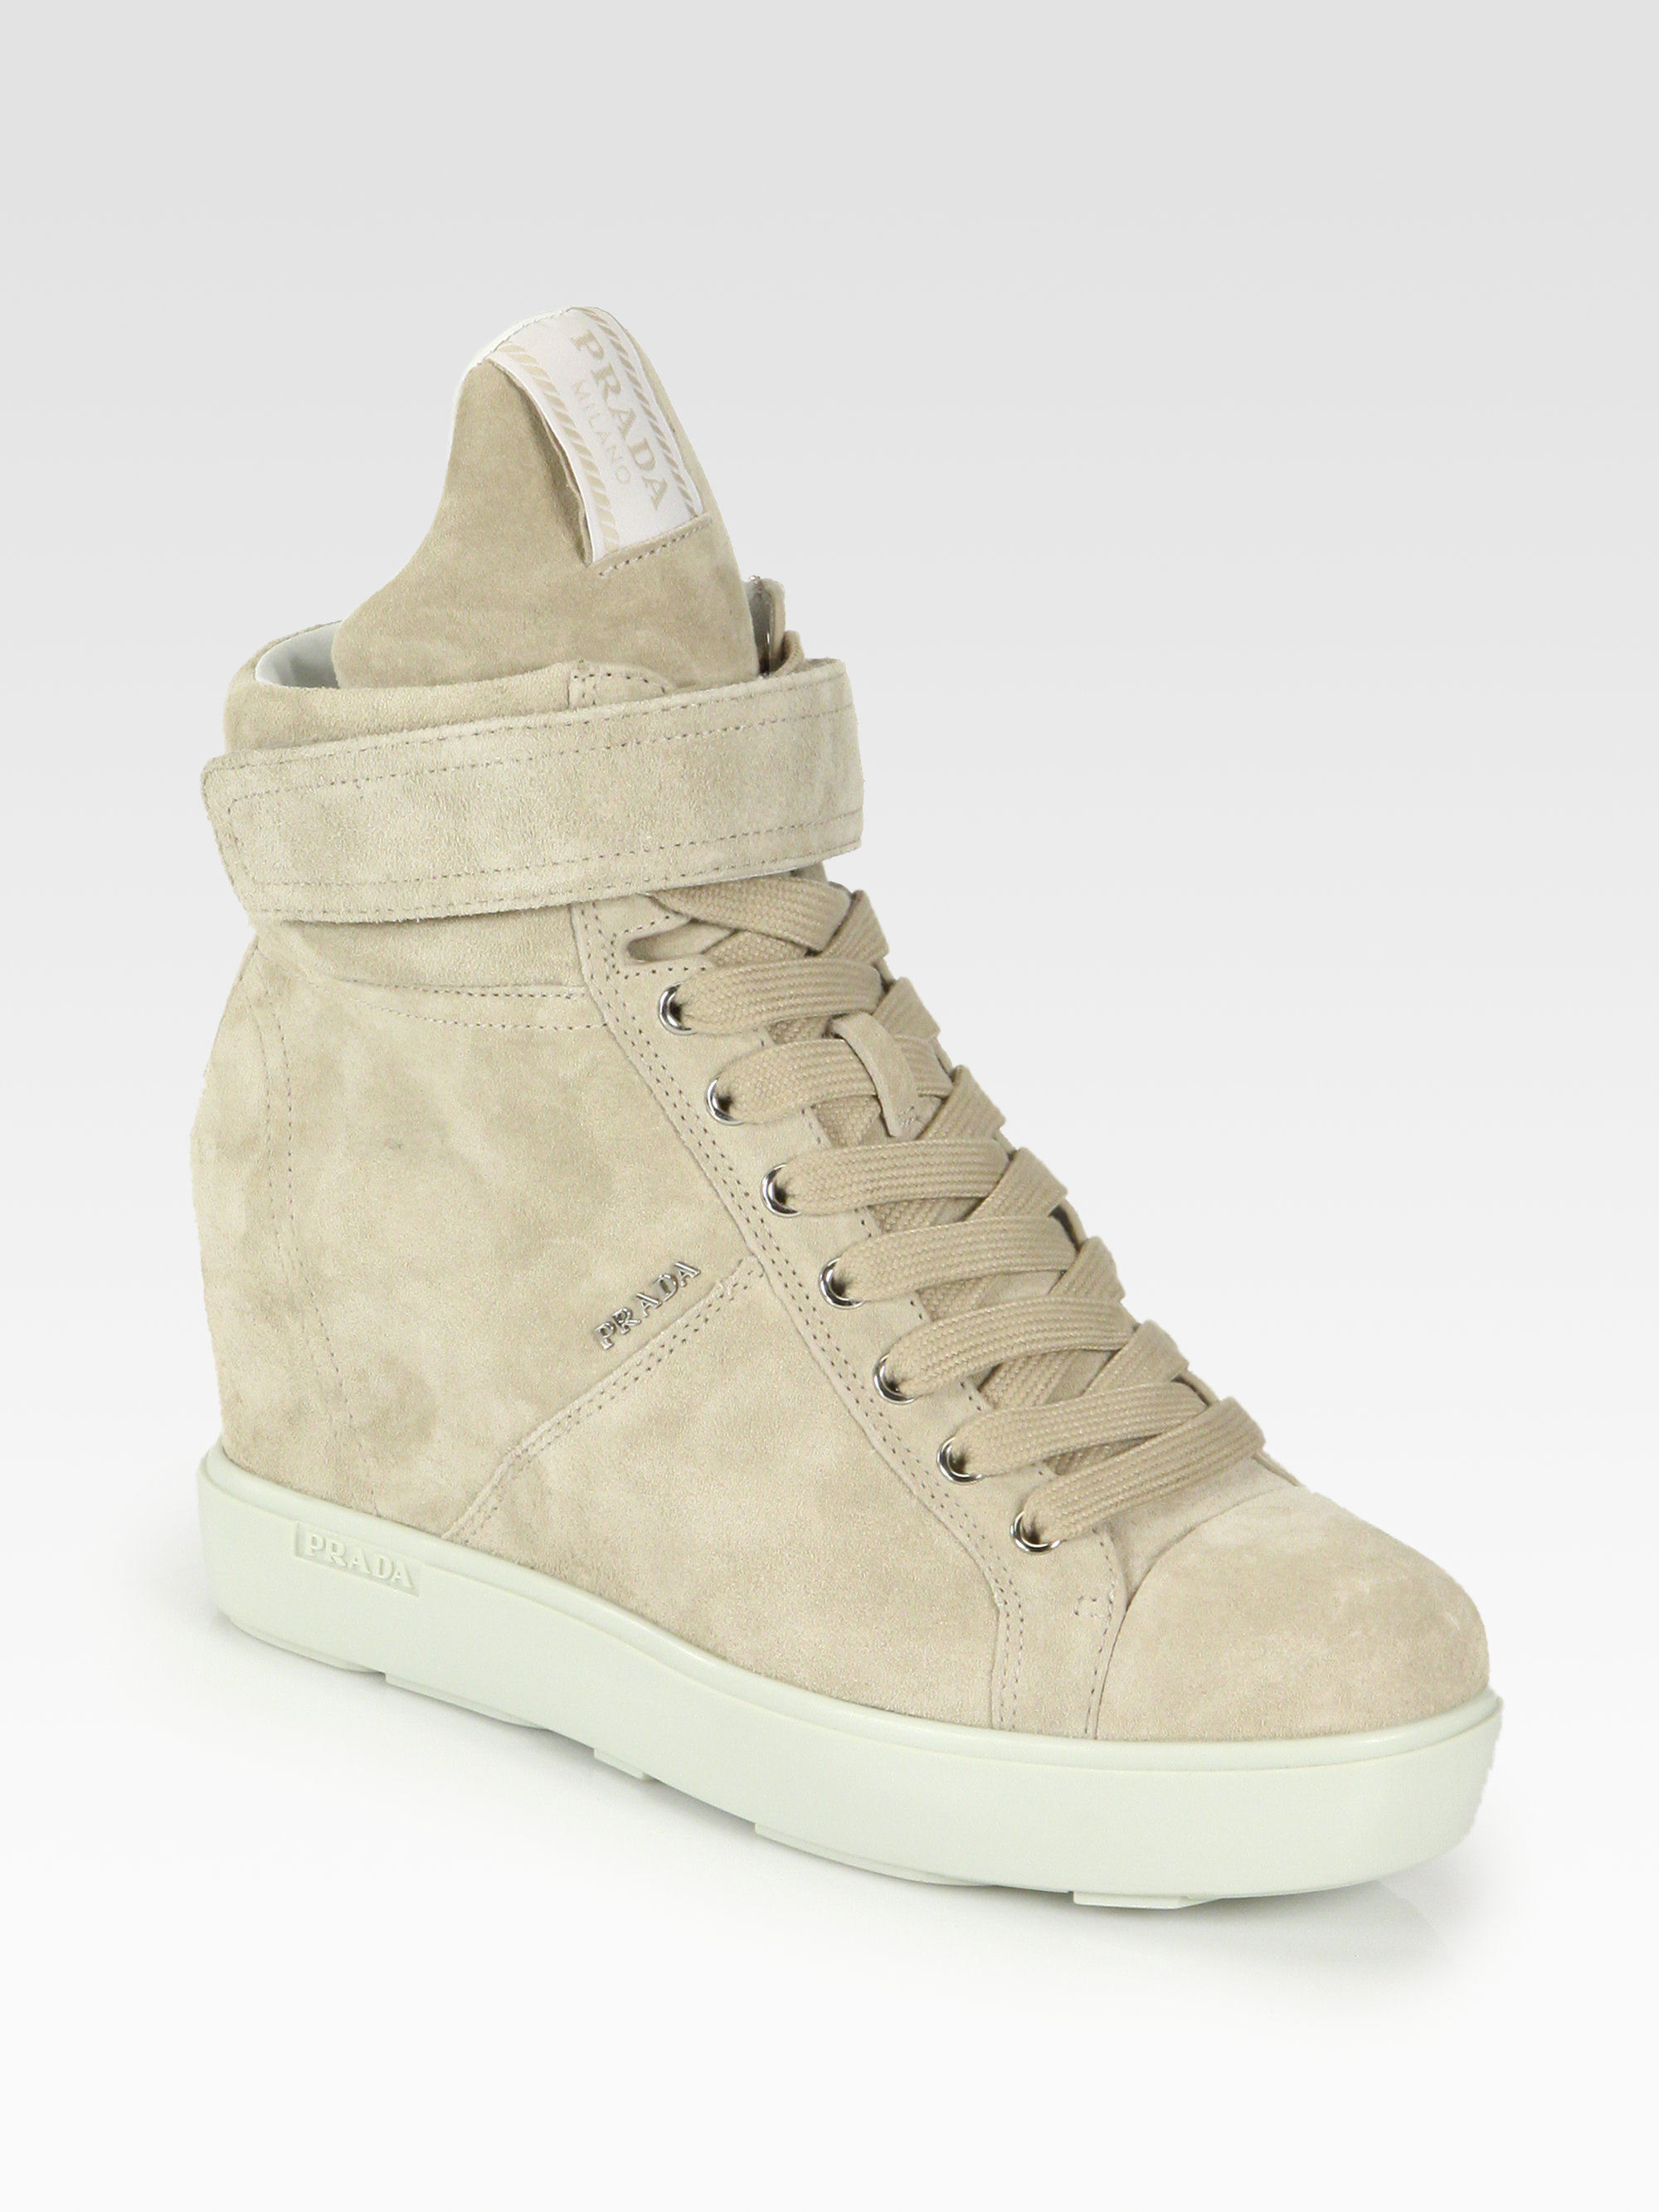 b9ecd069479 ... coupon code for lyst prada suede laceup wedge sneakers in natural 89e3a  3e2e4